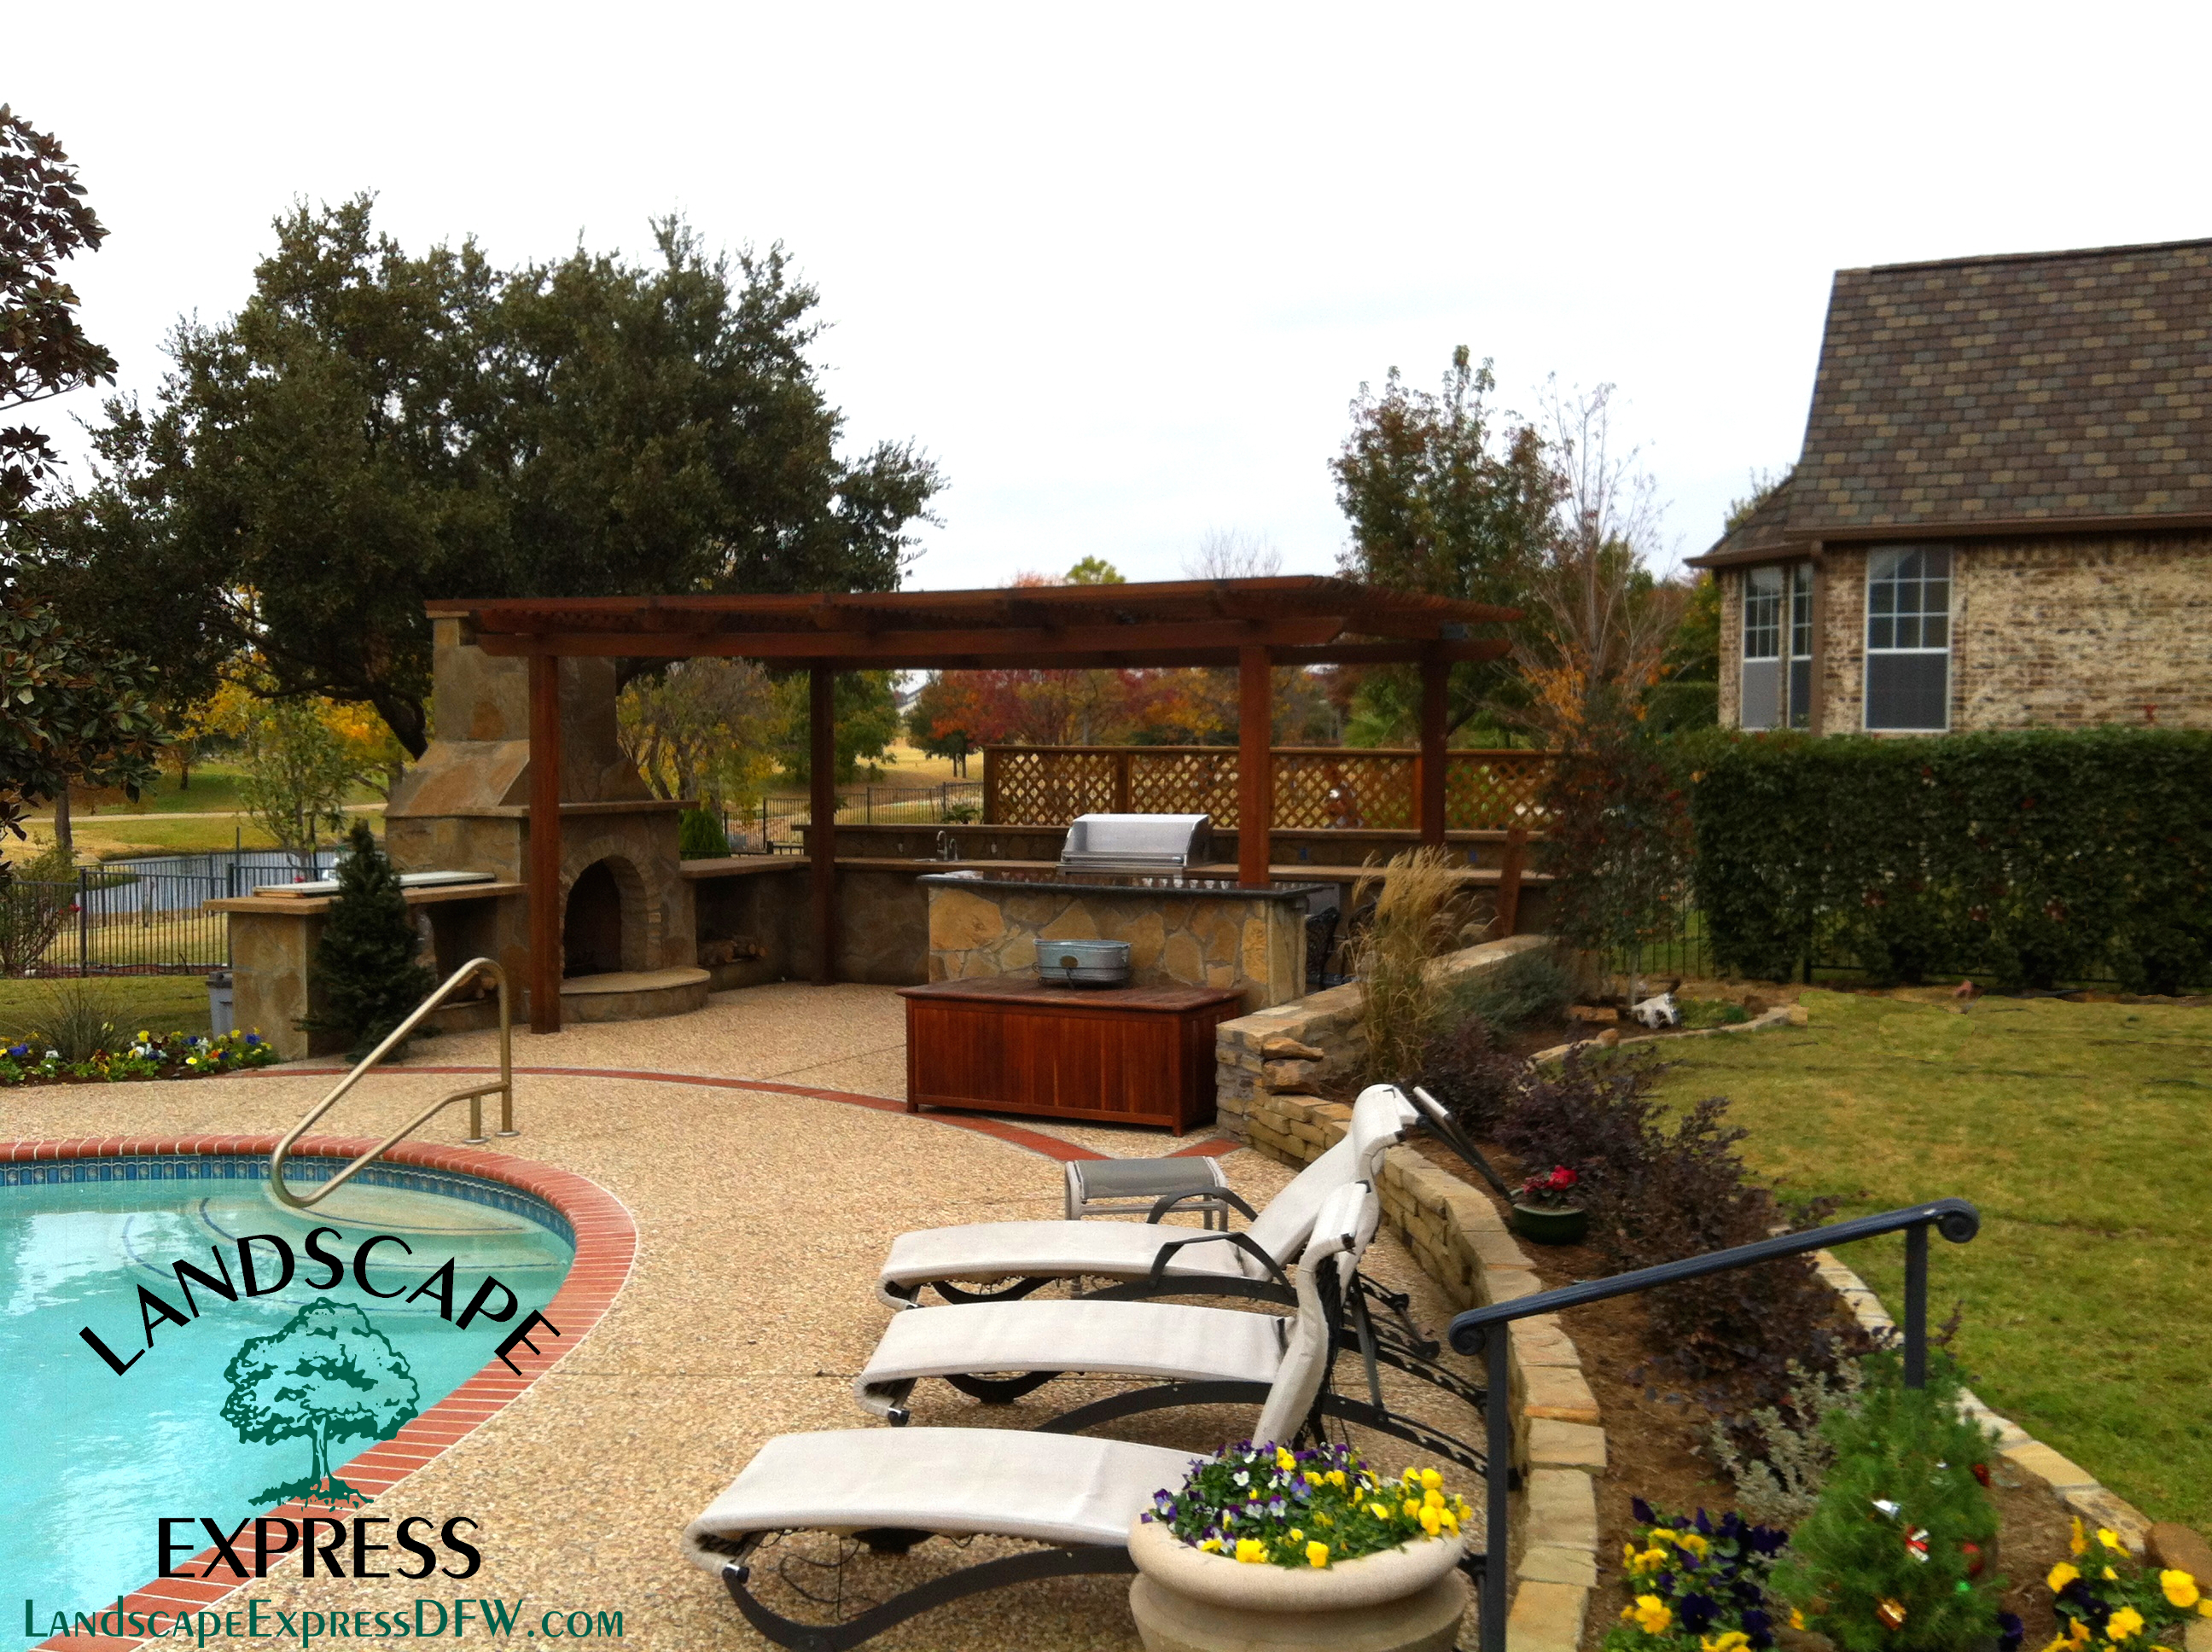 Landscape express custom landscaping design for Custom landscape design